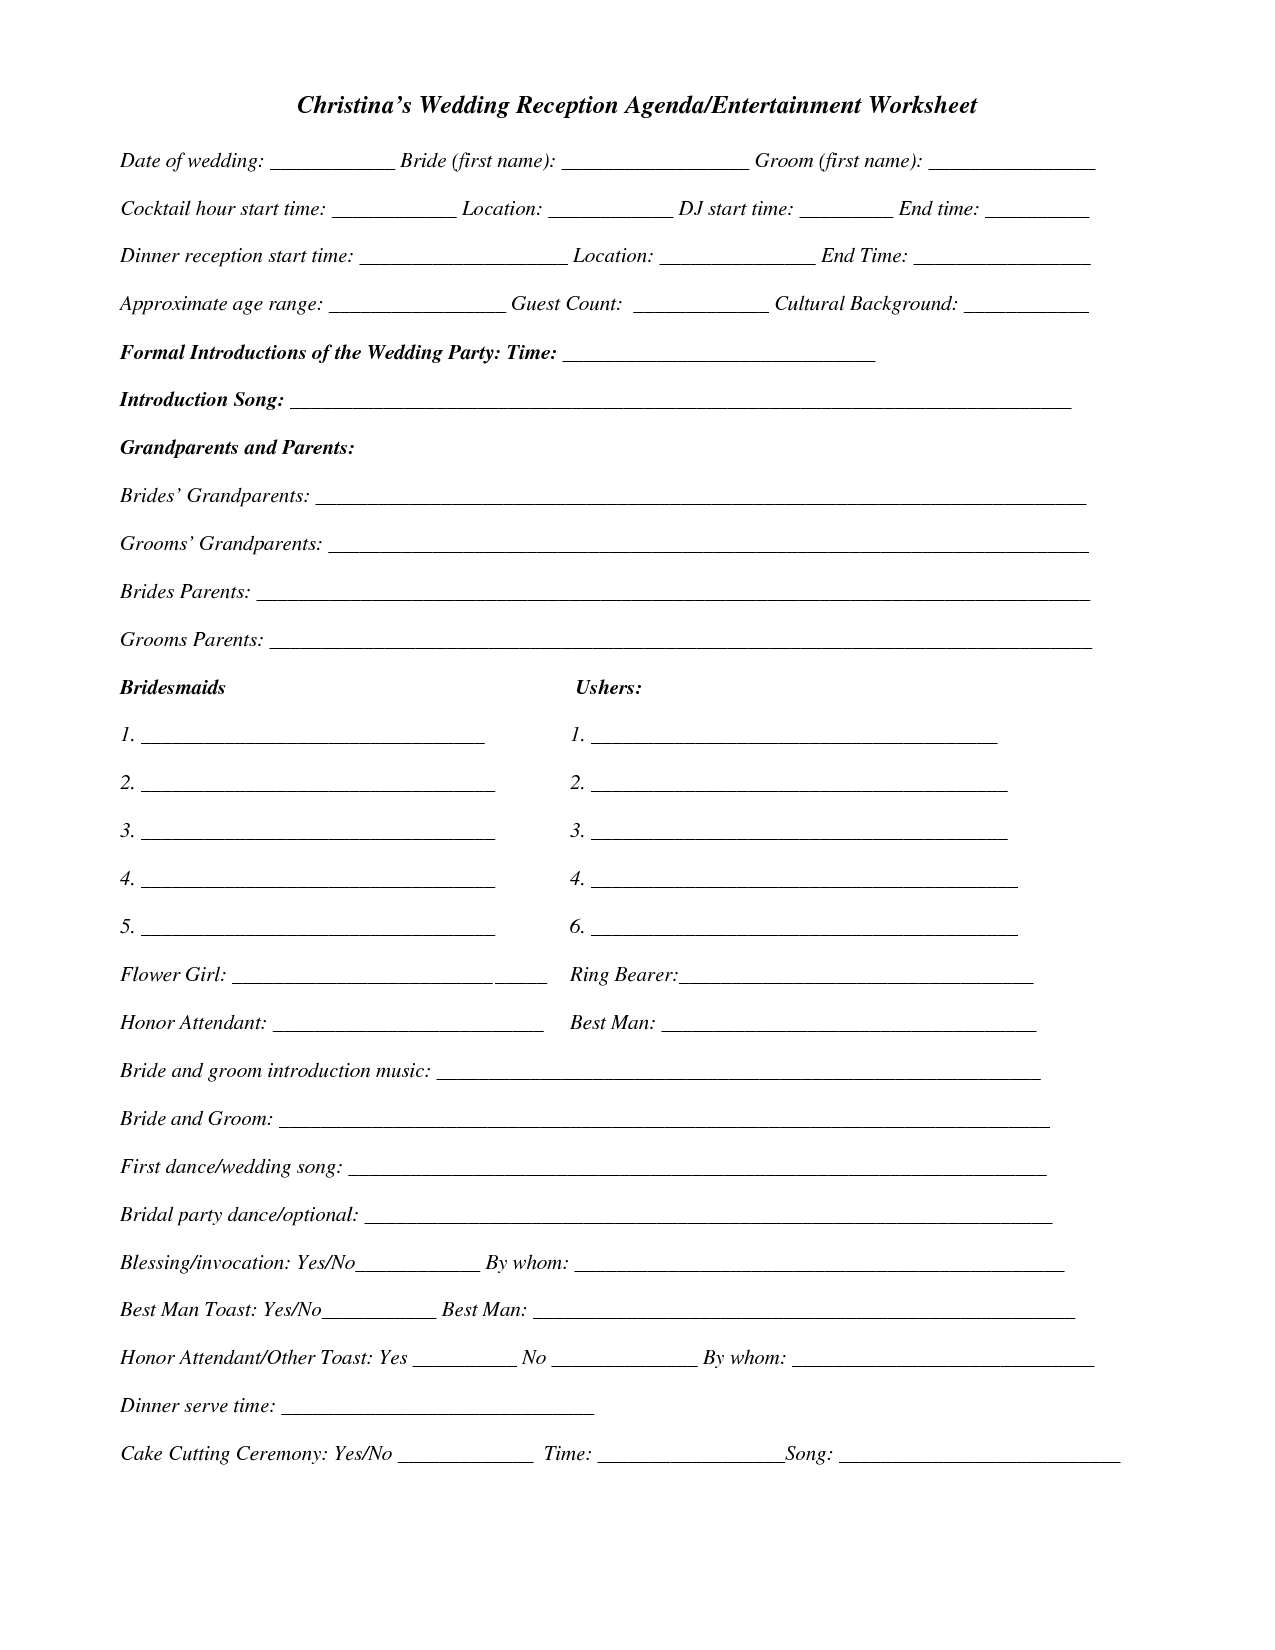 Dj Wedding Planner Printable Worksheets Quelles Astuces